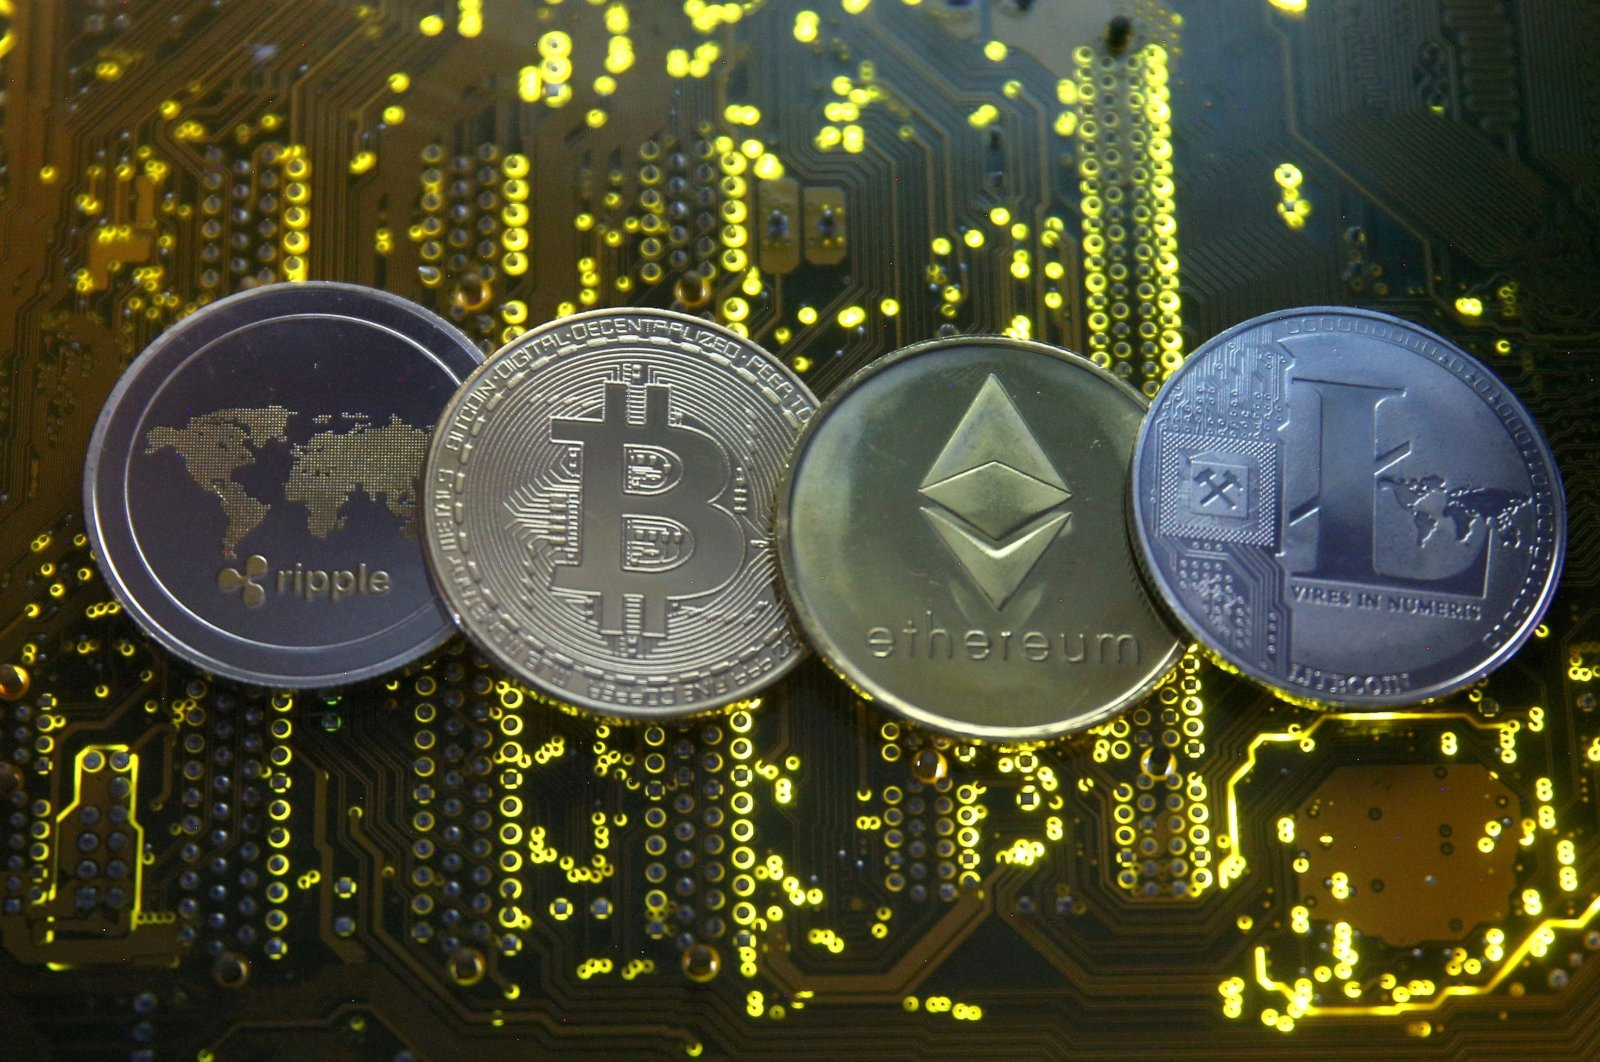 Representations of the Ripple, bitcoin, etherum and Litecoin virtual currencies are seen on a PC motherboard in this illustration, Feb. 14, 2018. (Reuters Photo)